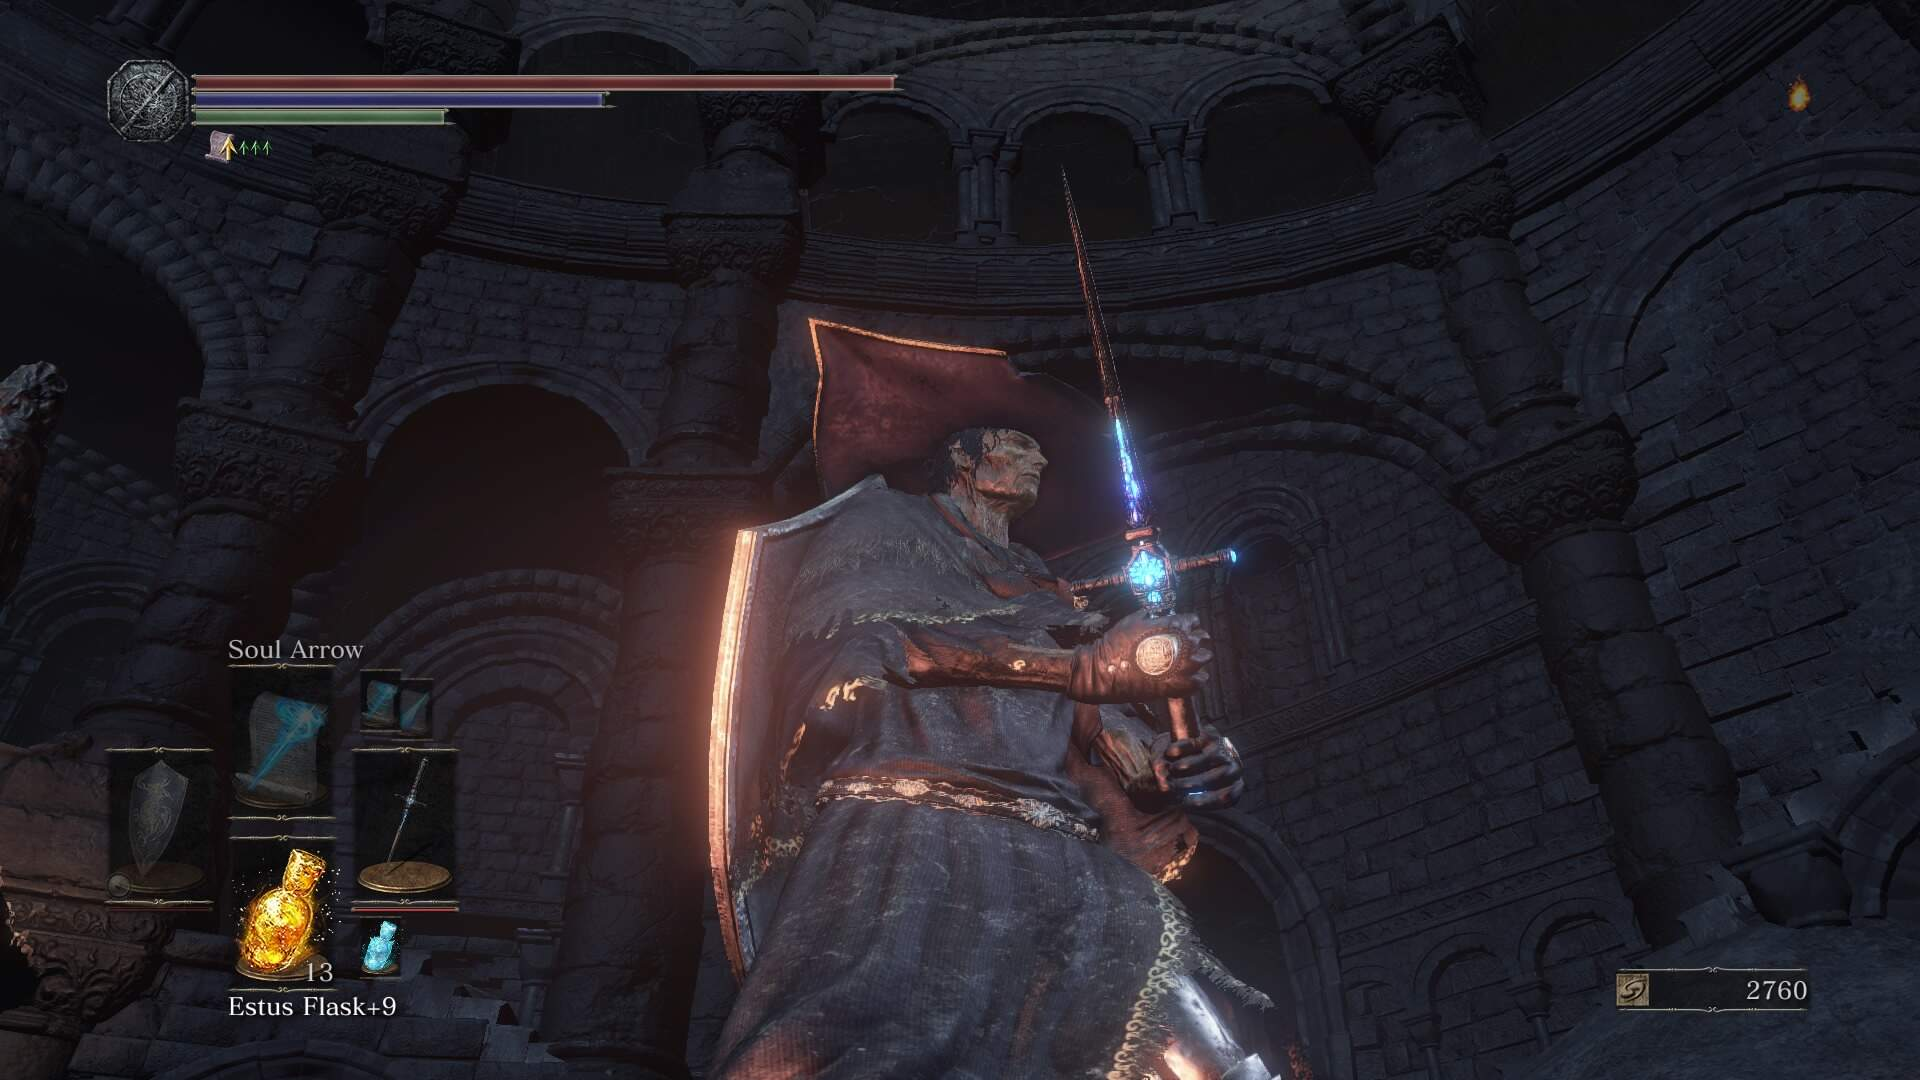 Dark Souls 3: The Ringed City DLC Walkthrough – A Guide to Finding All of the Weapons and Spells